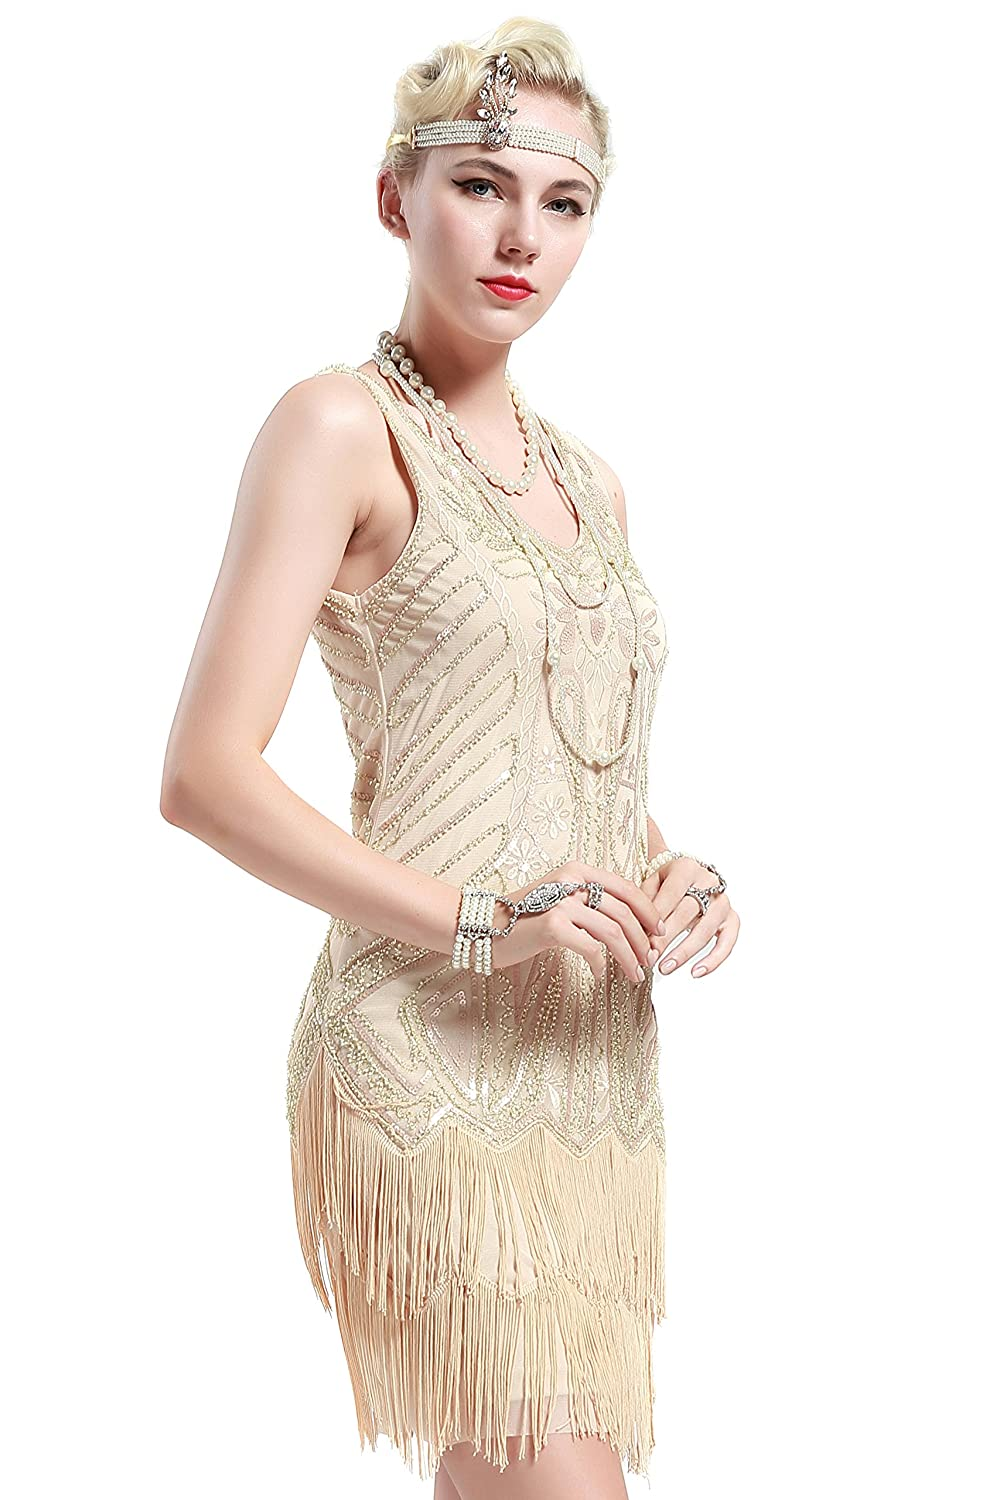 1920s Style Dresses, Flapper Dresses Flapper Dresses 1920s V Neck Beaded Fringed Great Gatsby Dress $28.99 AT vintagedancer.com